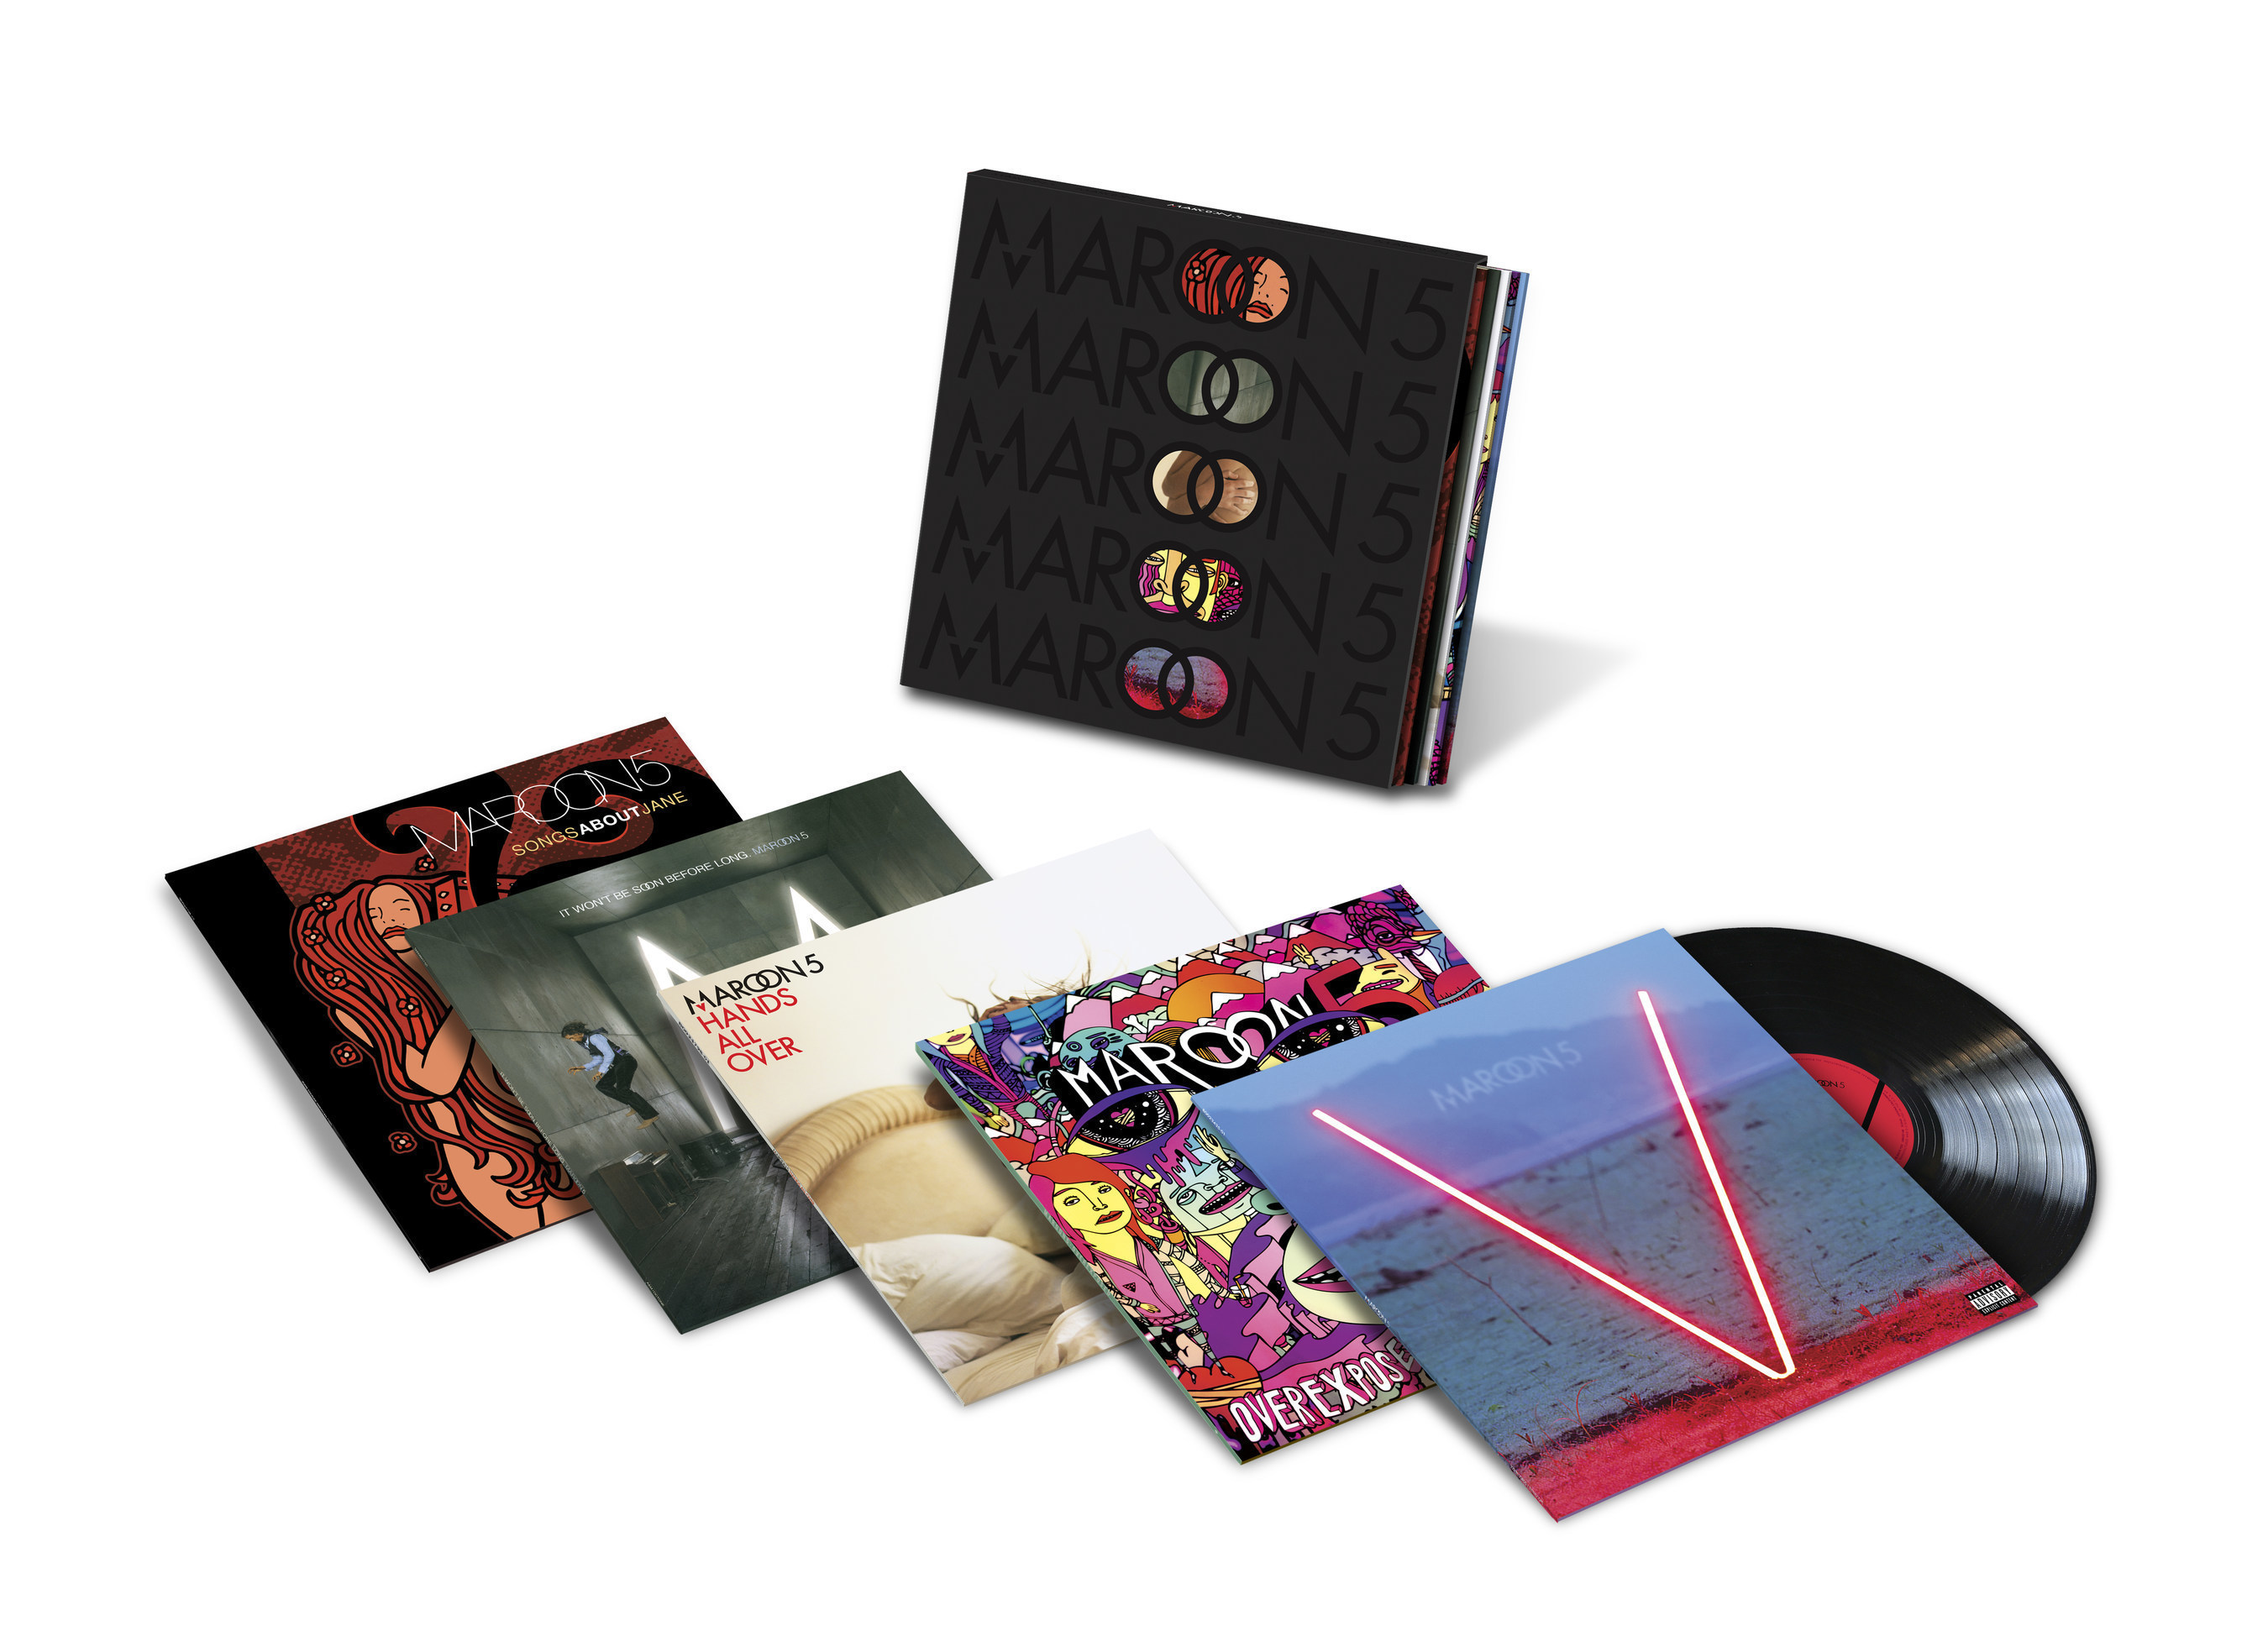 MAROON 5 -- THE STUDIO ALBUMS LIMITED EDITION FIVE-LP BOX SET, ALL FIVE TITLES ALSO AVAILABLE ON INDIVIDUAL VINYL